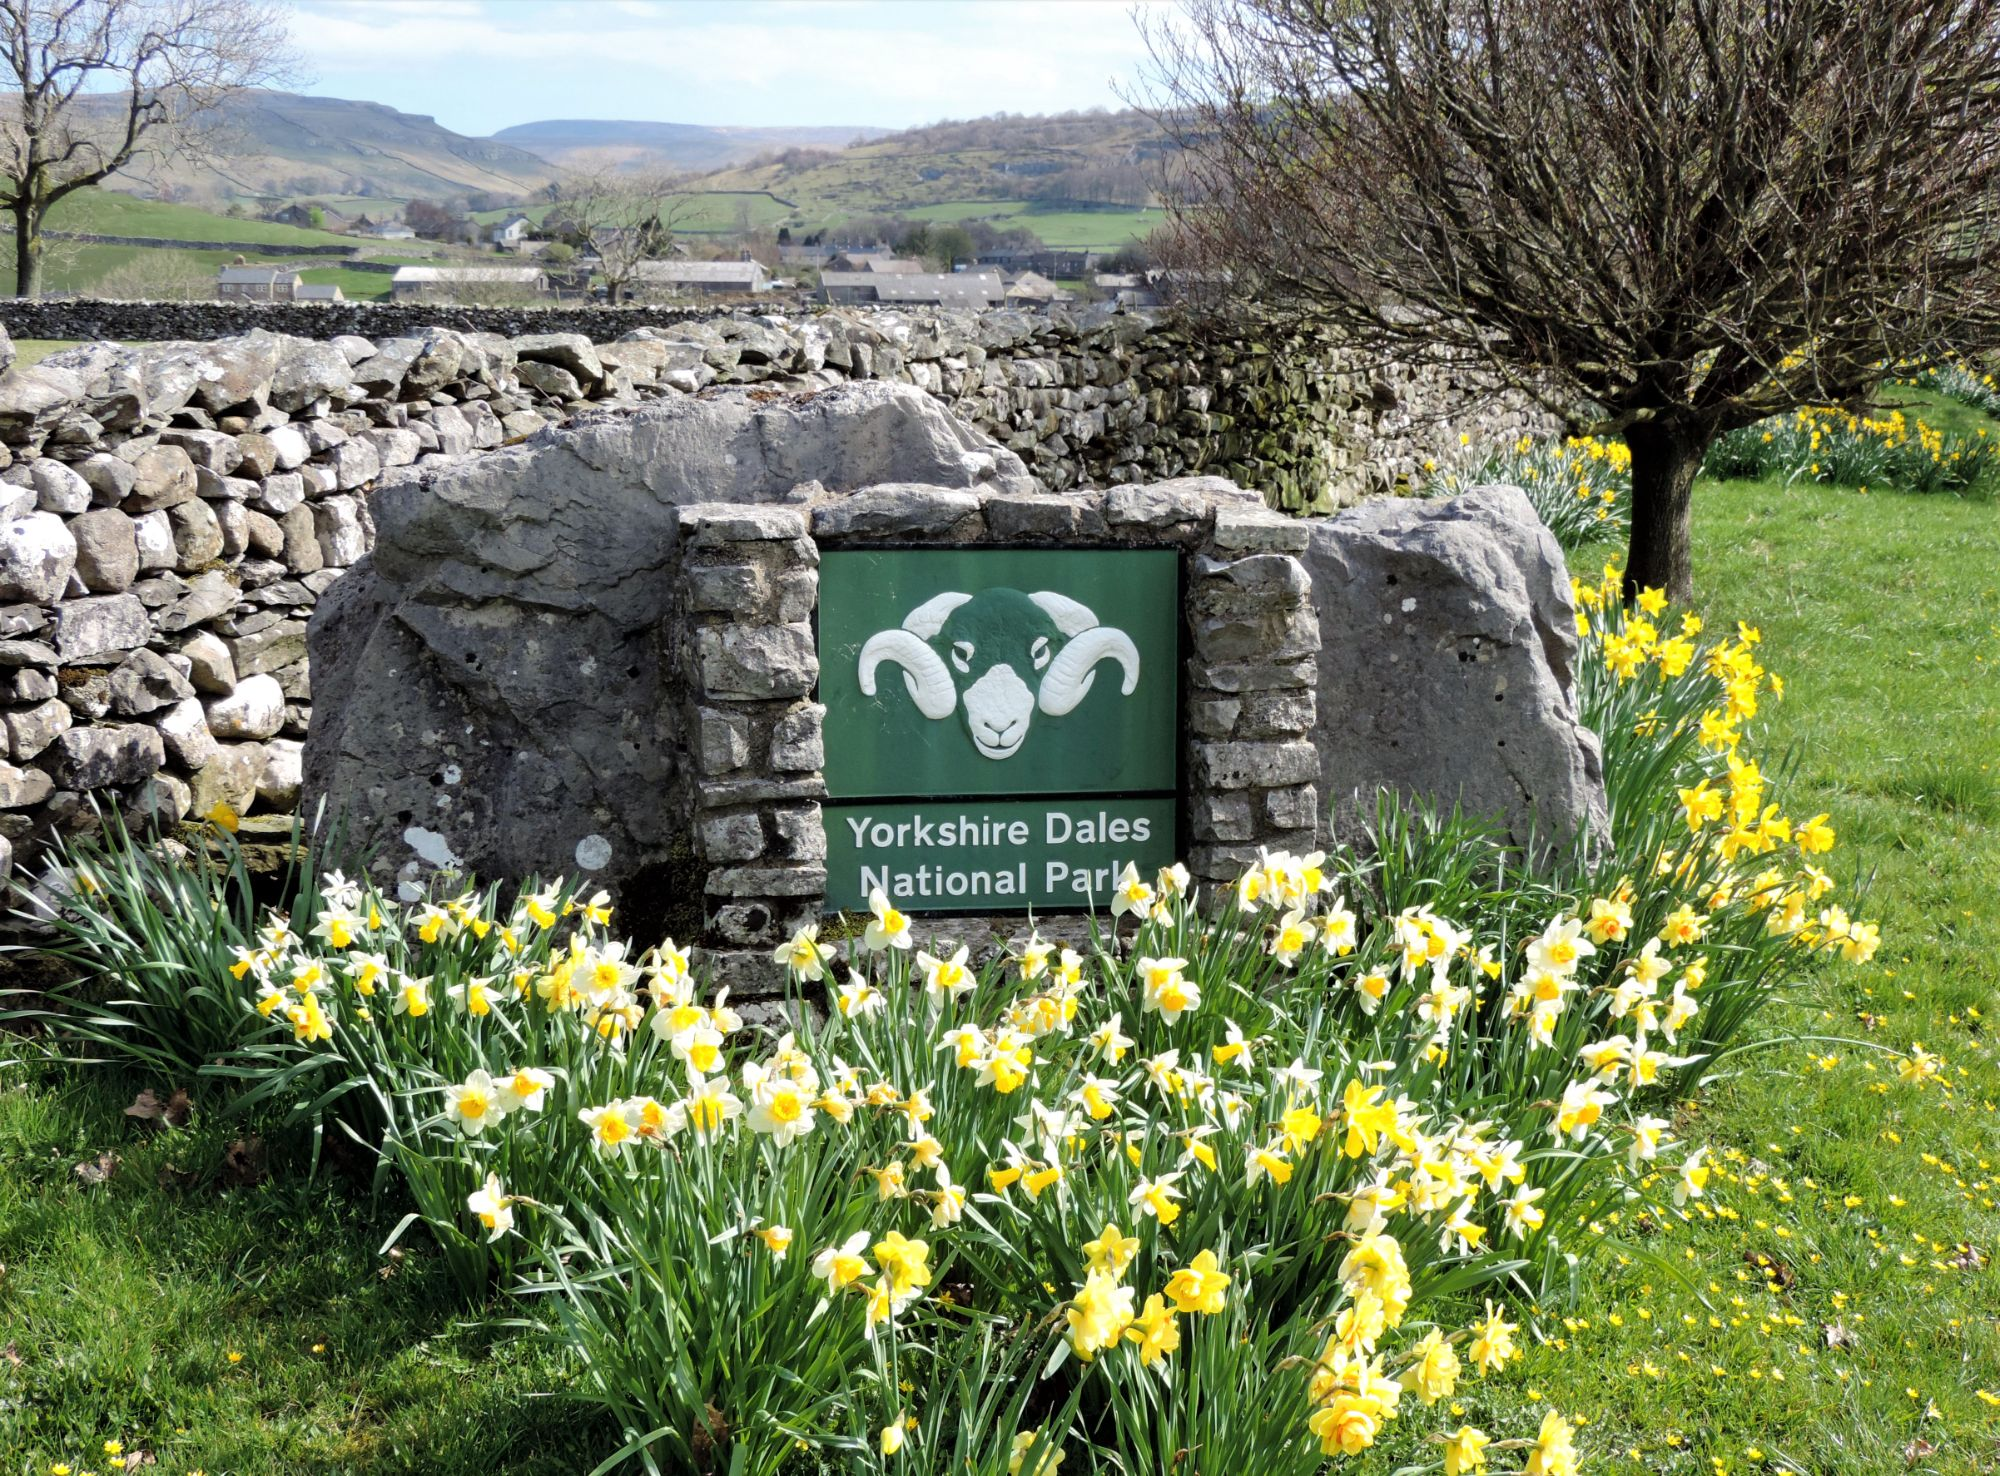 Yorkshire Dales National Park sign in Austwick village